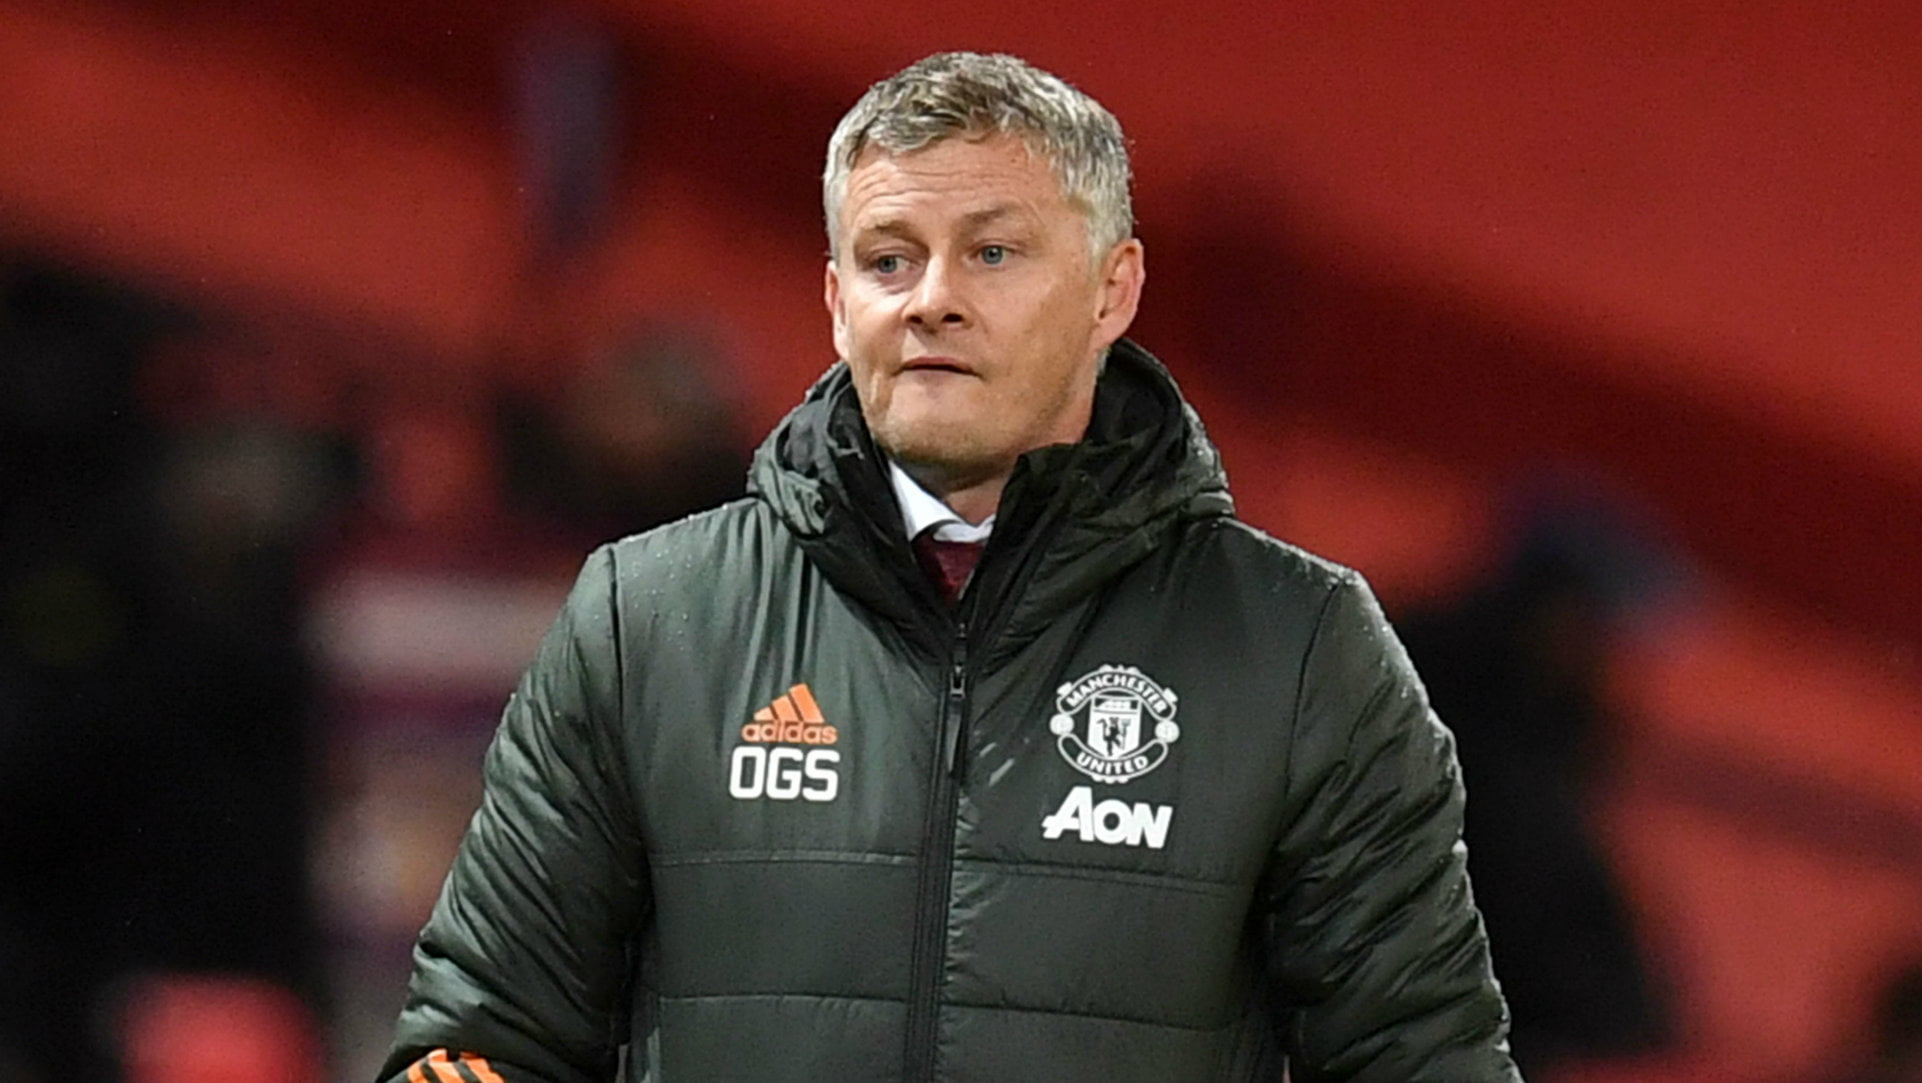 fa-cup-what-solskjaer-said-about-fred-after-man-utds-3-1-defeat-at-leicester.jpg